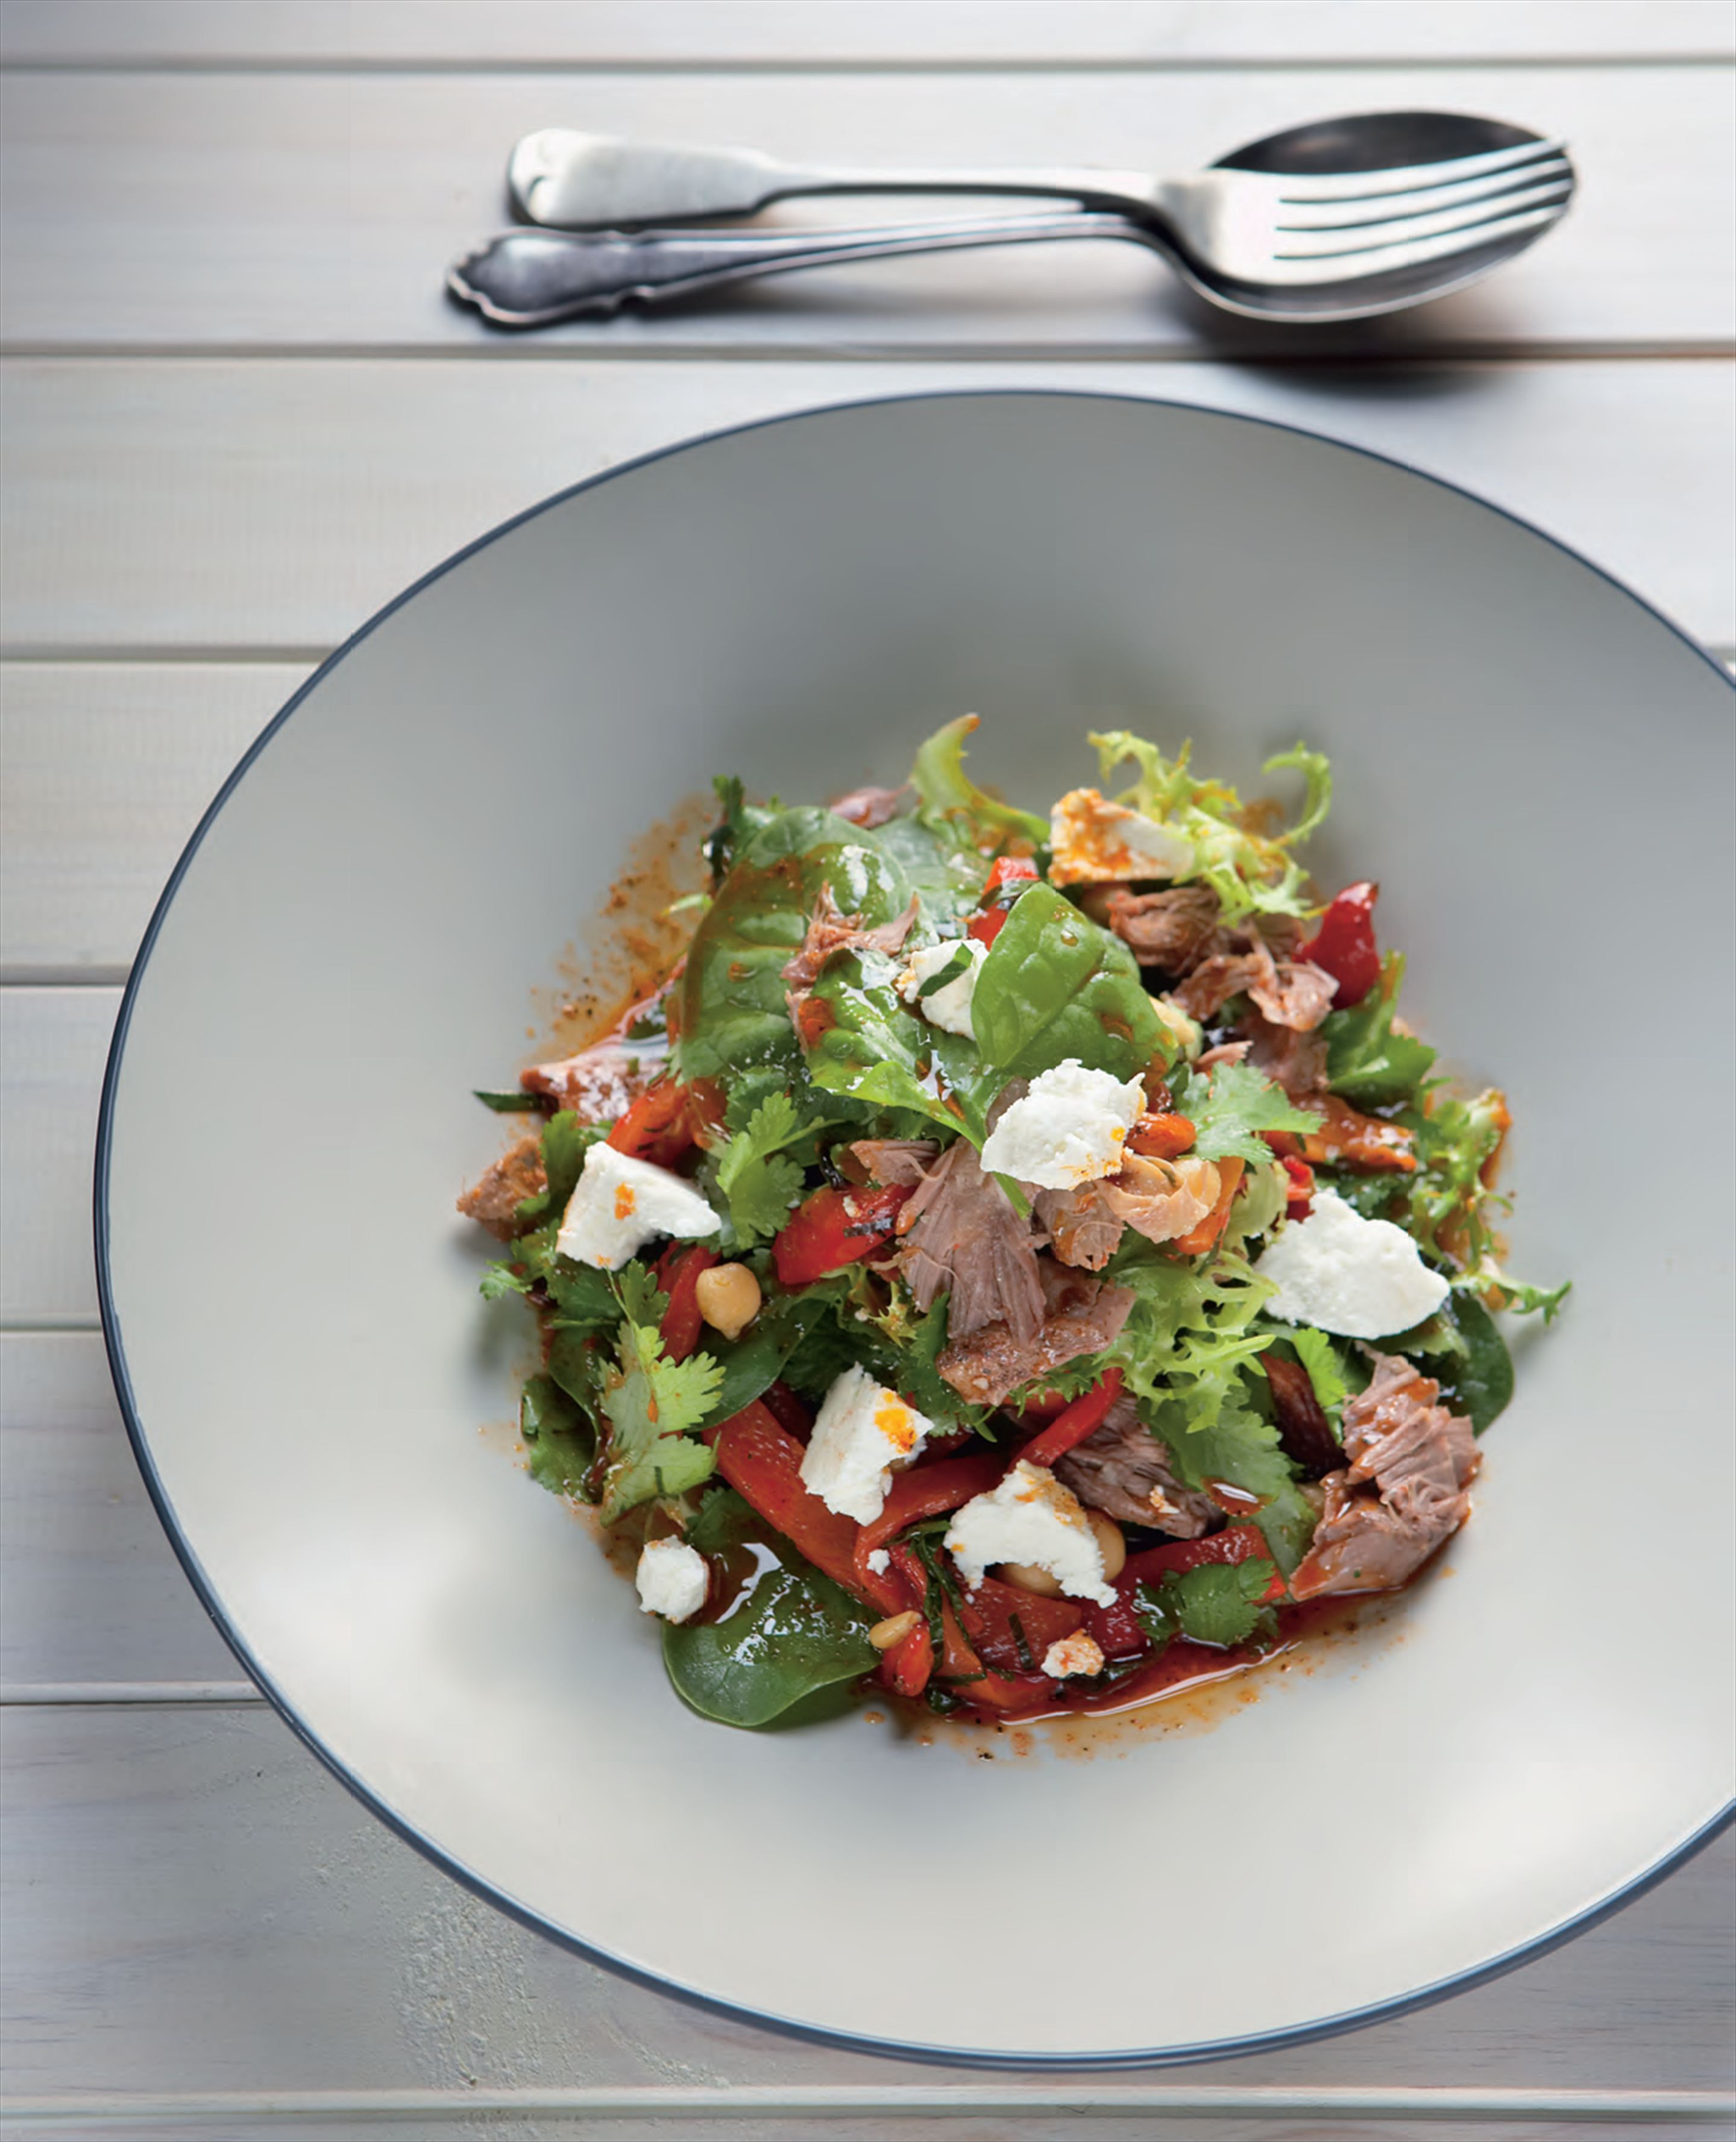 Lamb salad with spinach, goat's cheese and chickpeas